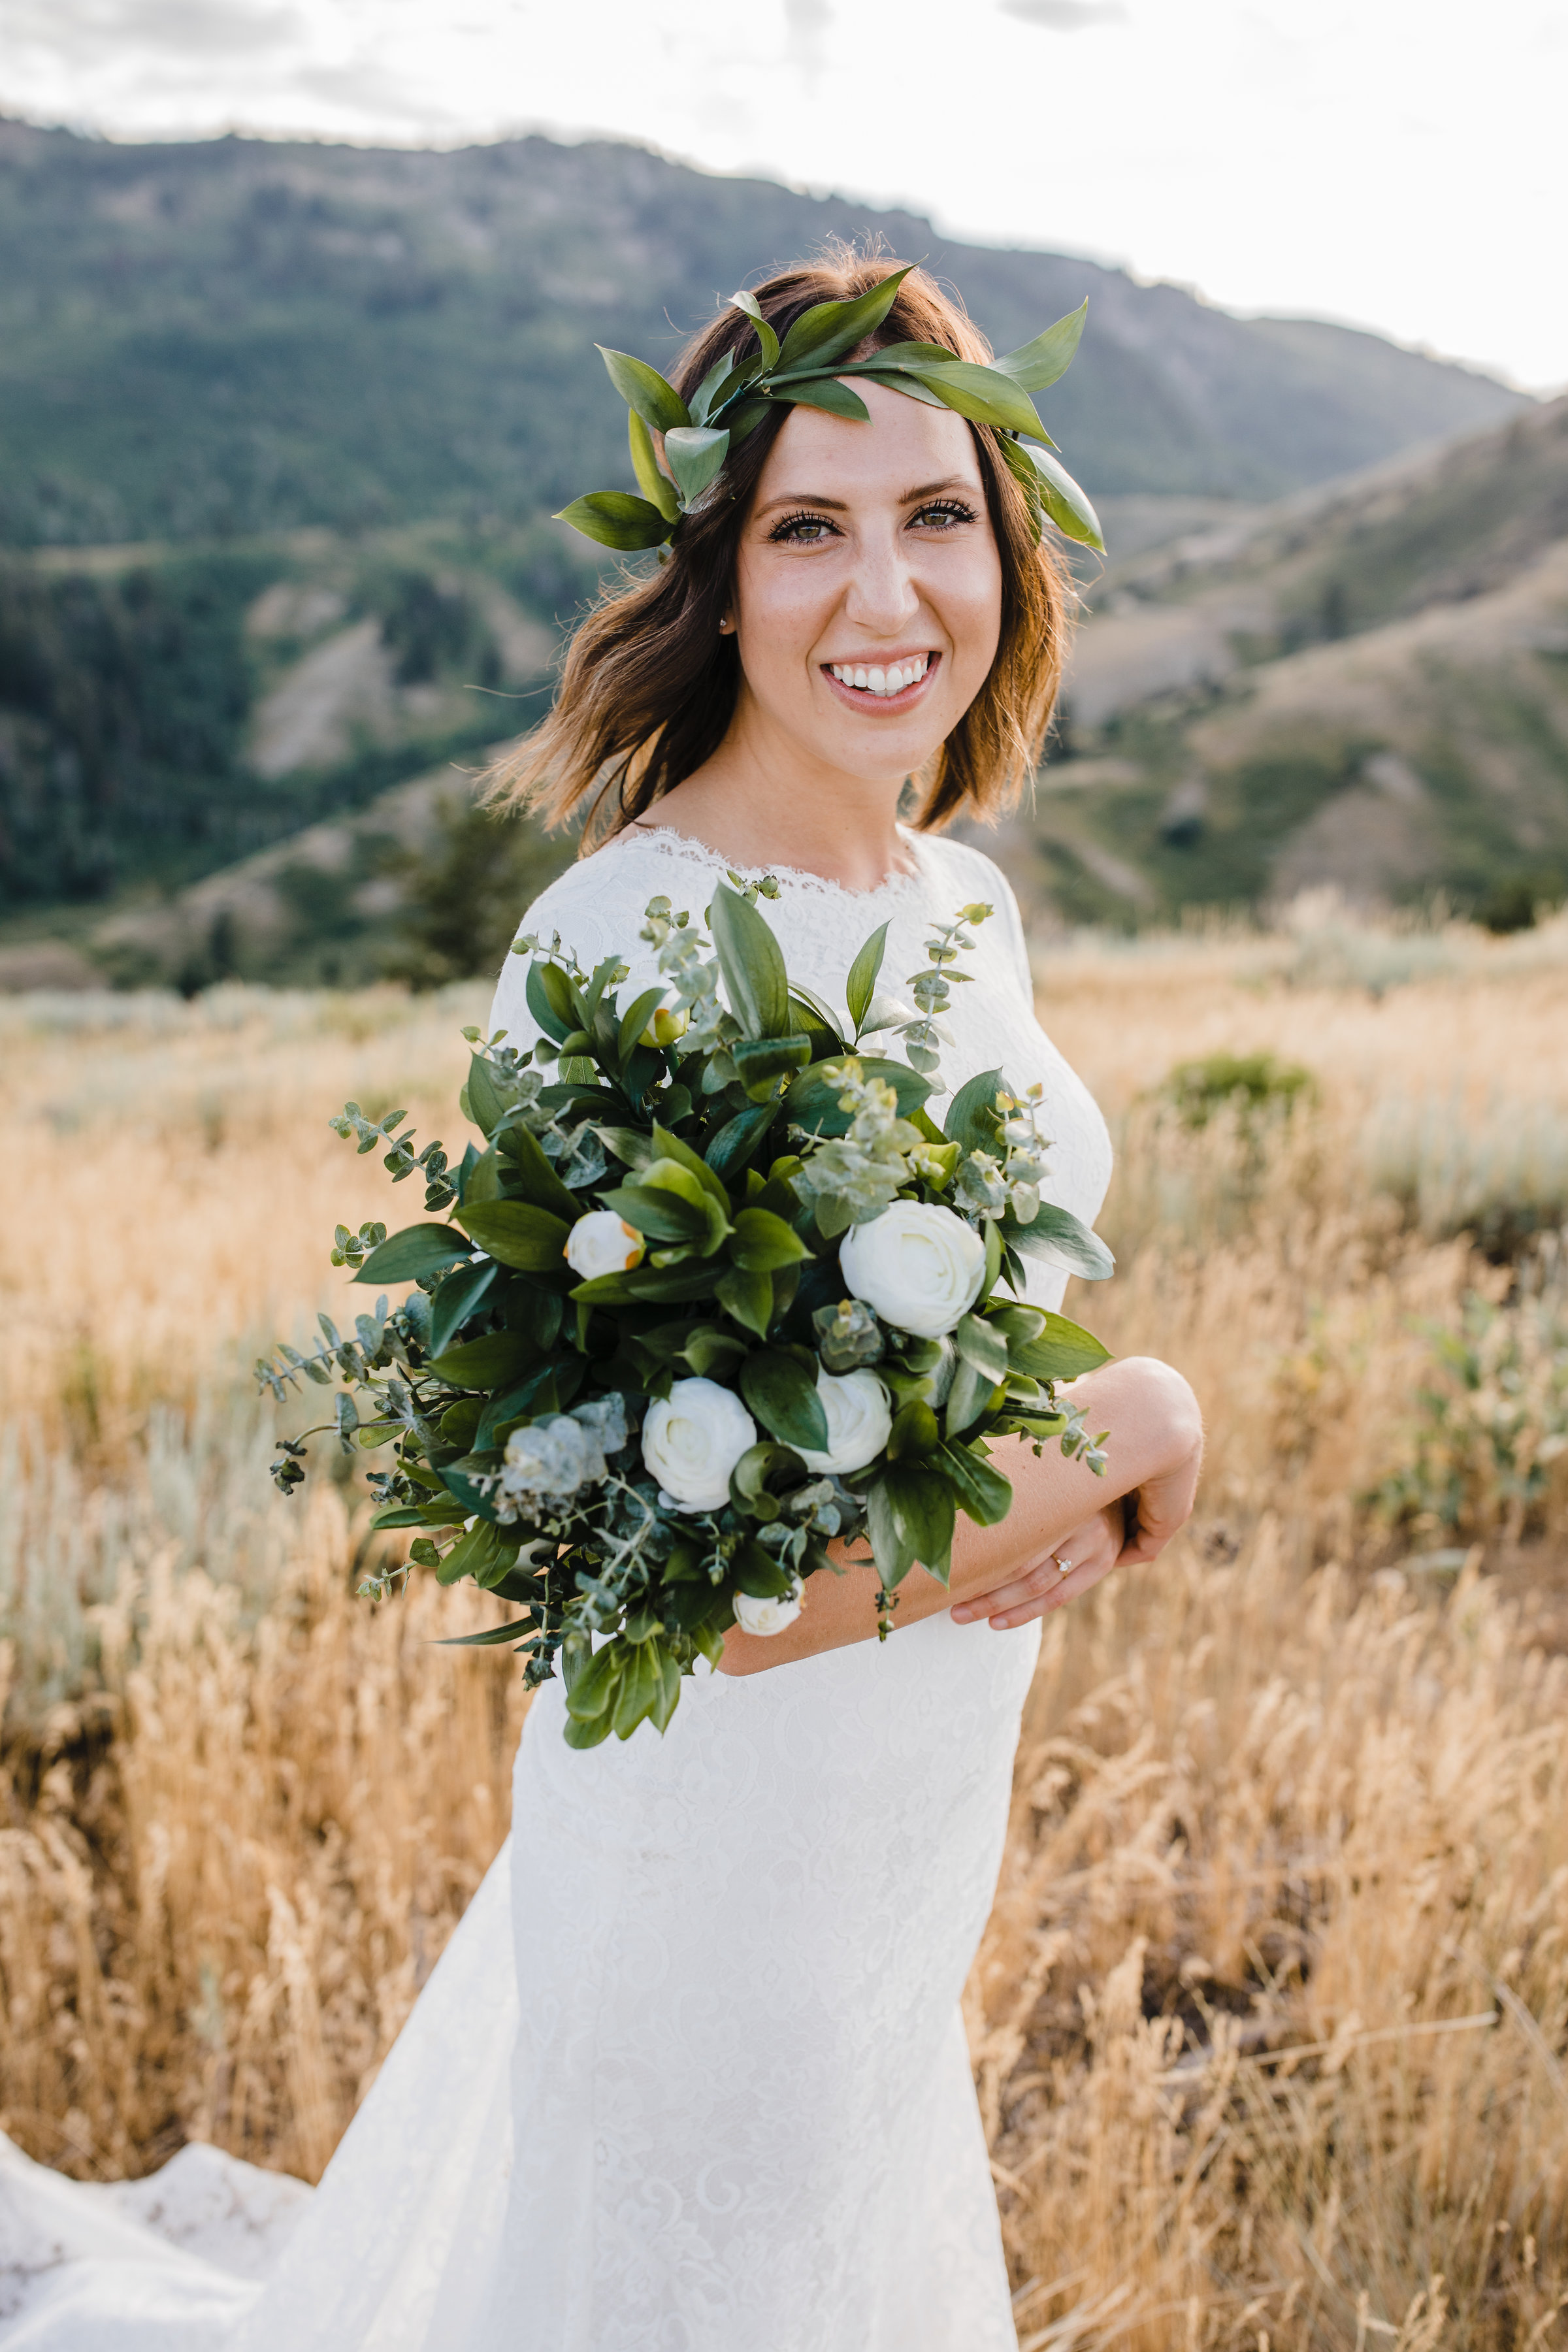 bridal photographer in brigham city utah smiling mountains field floral crown bohemian bouquet